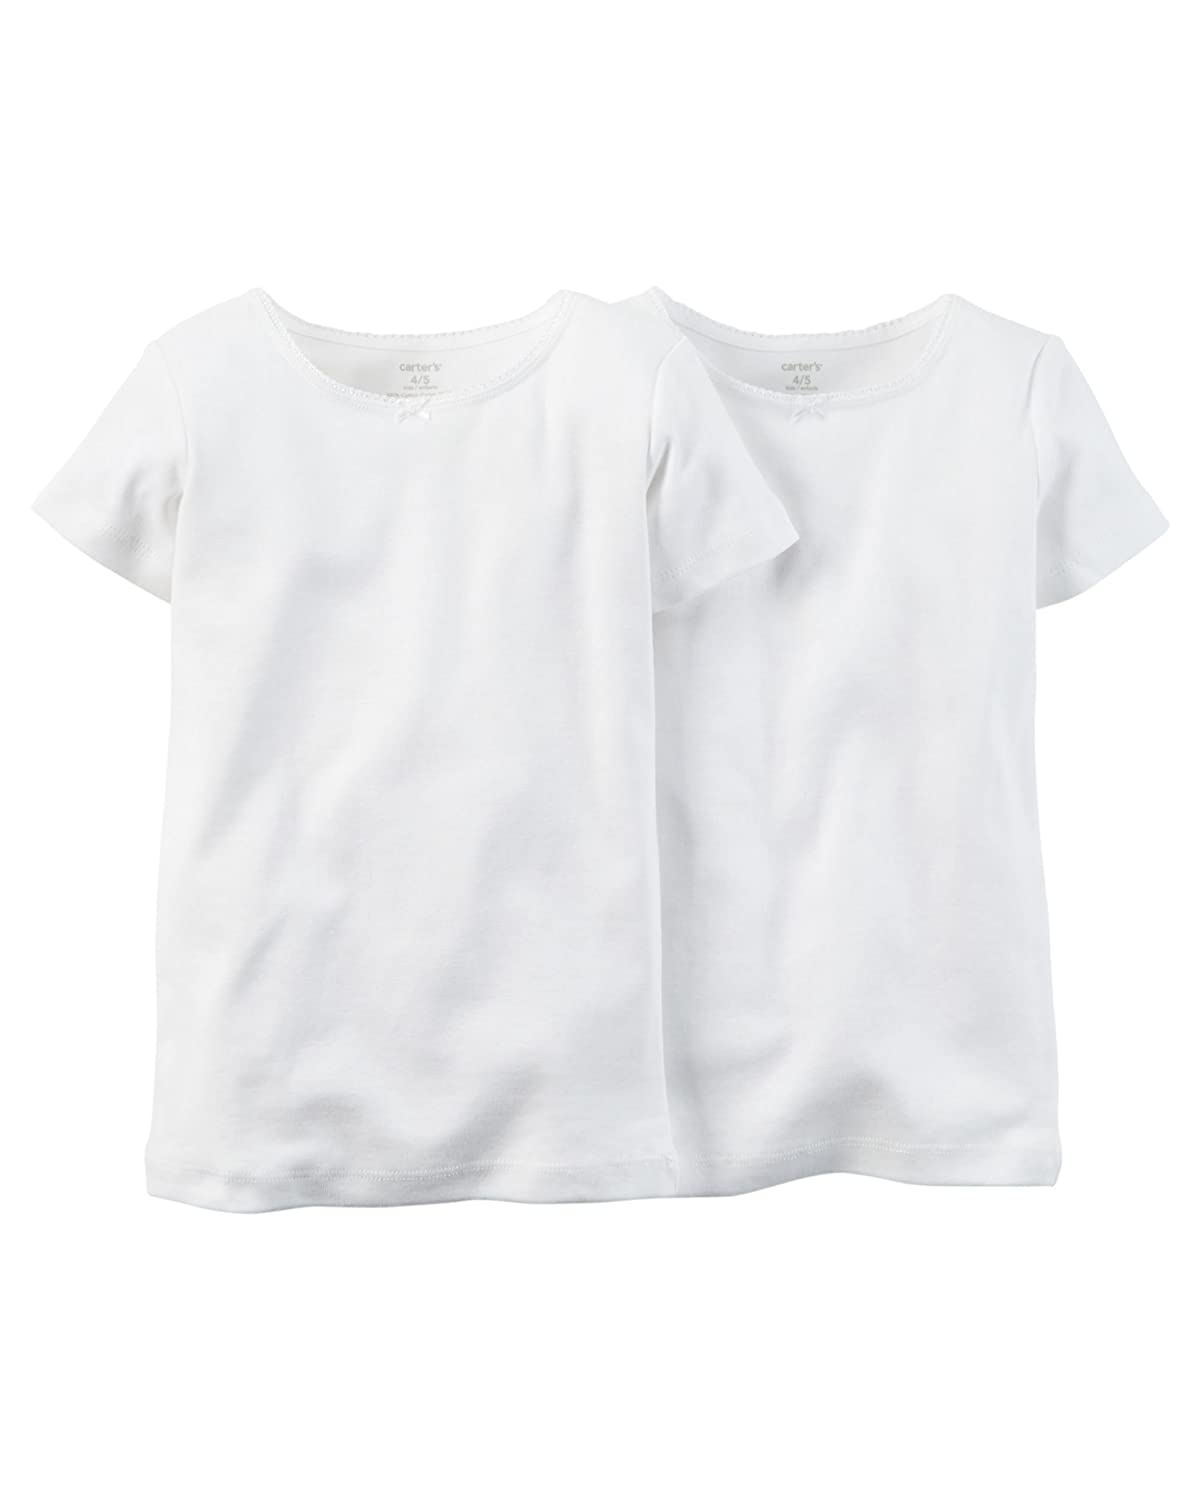 Carters Girls 2-Pack Cotton Short-sleeve Undershirt